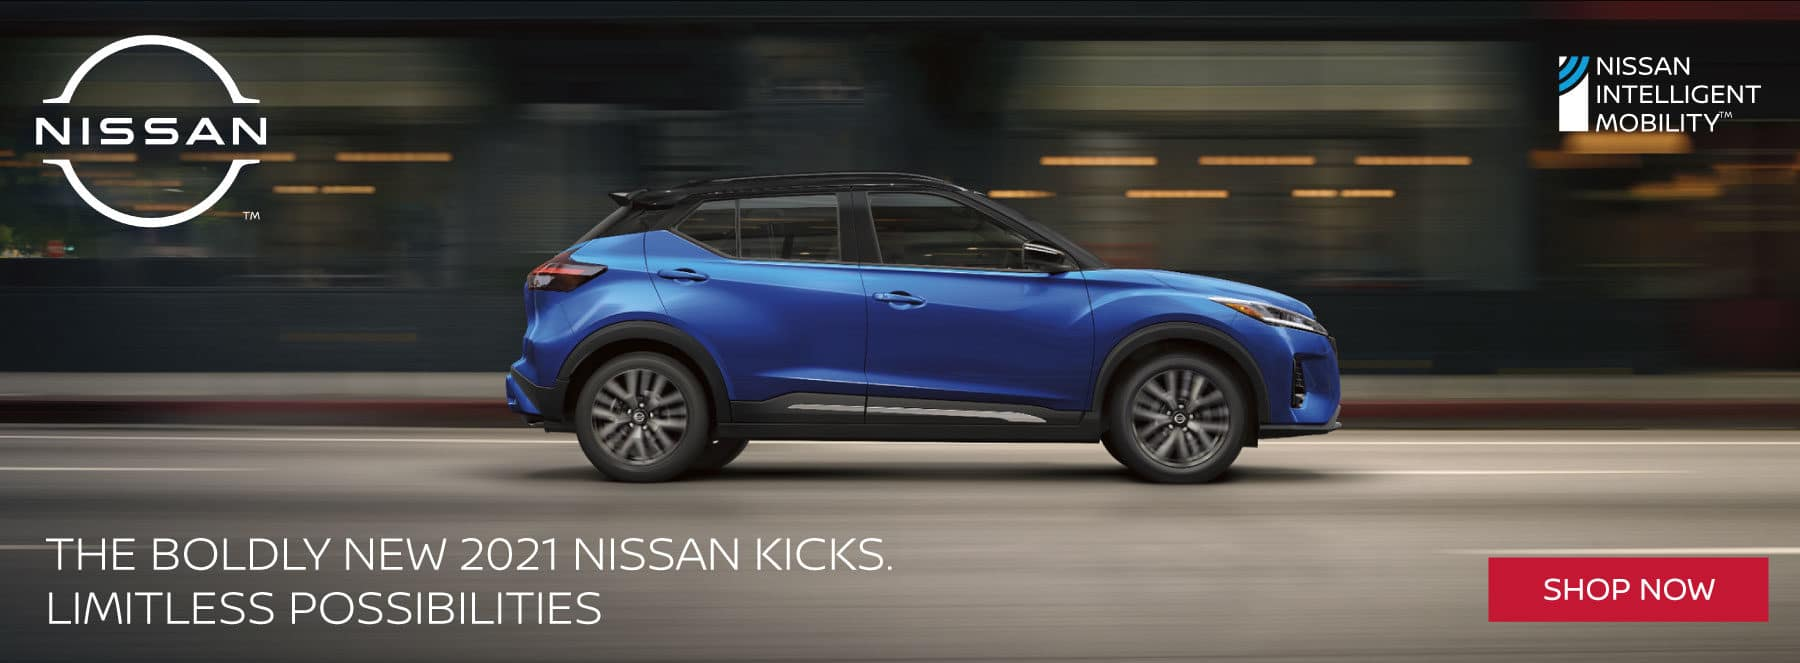 The boldly new 2021 Nissan Kicks